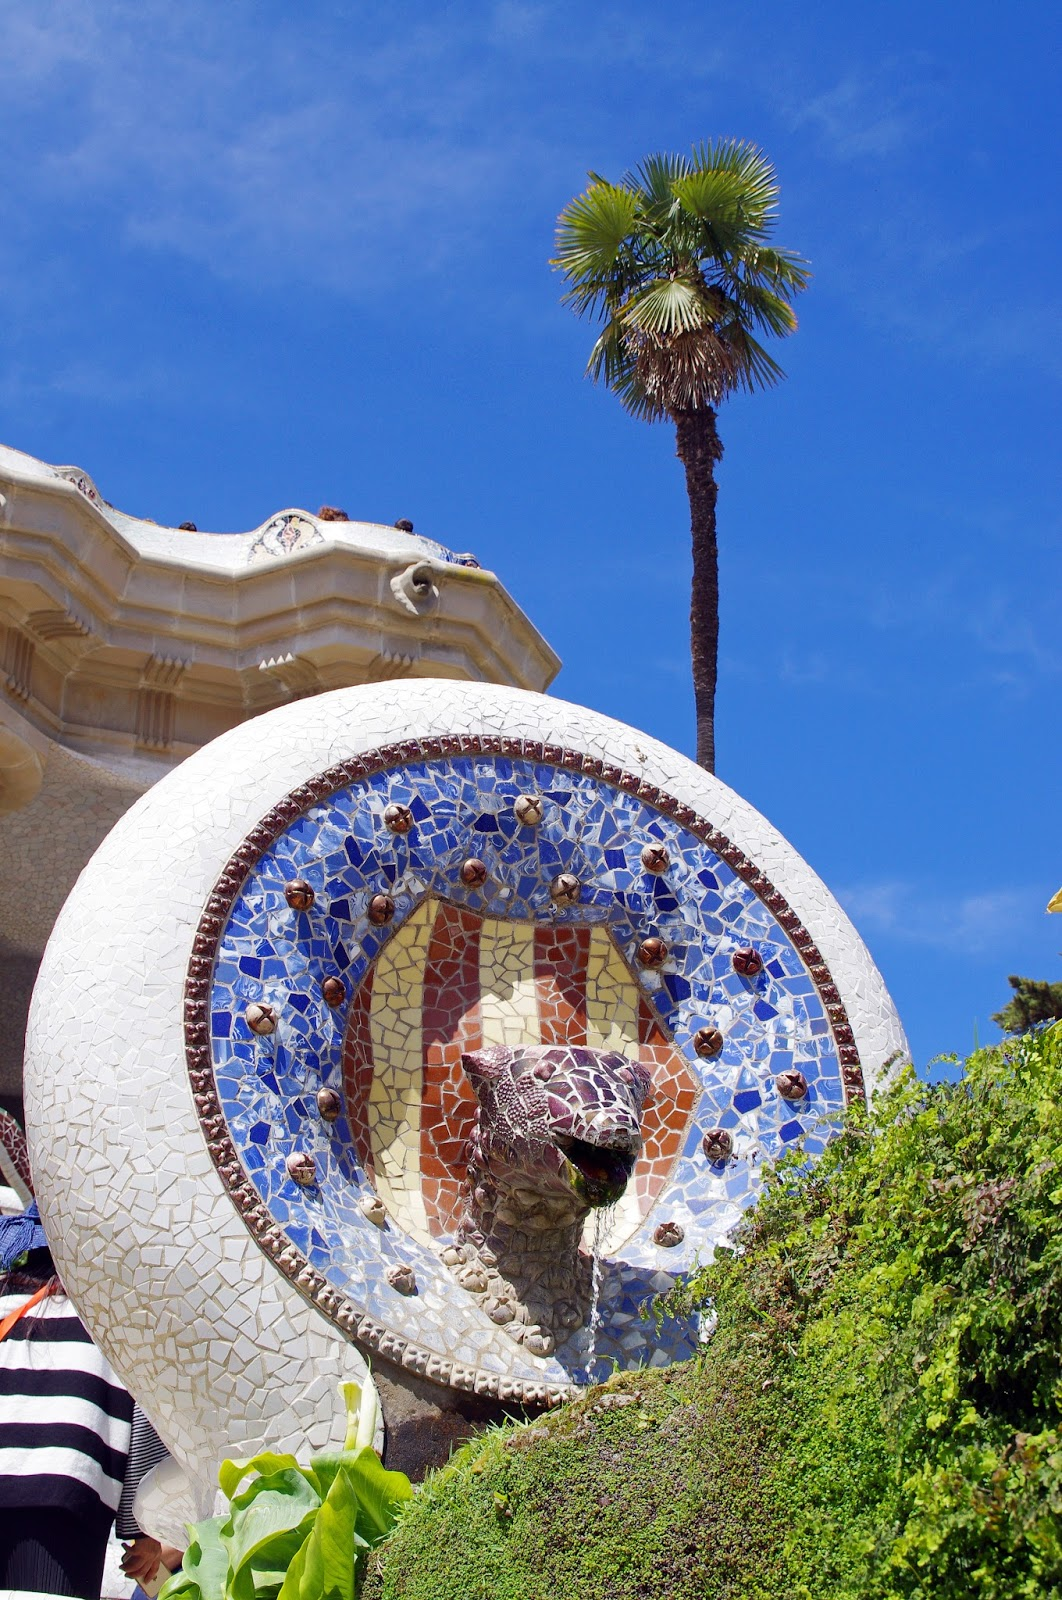 Park Guell Mosaics and Statues